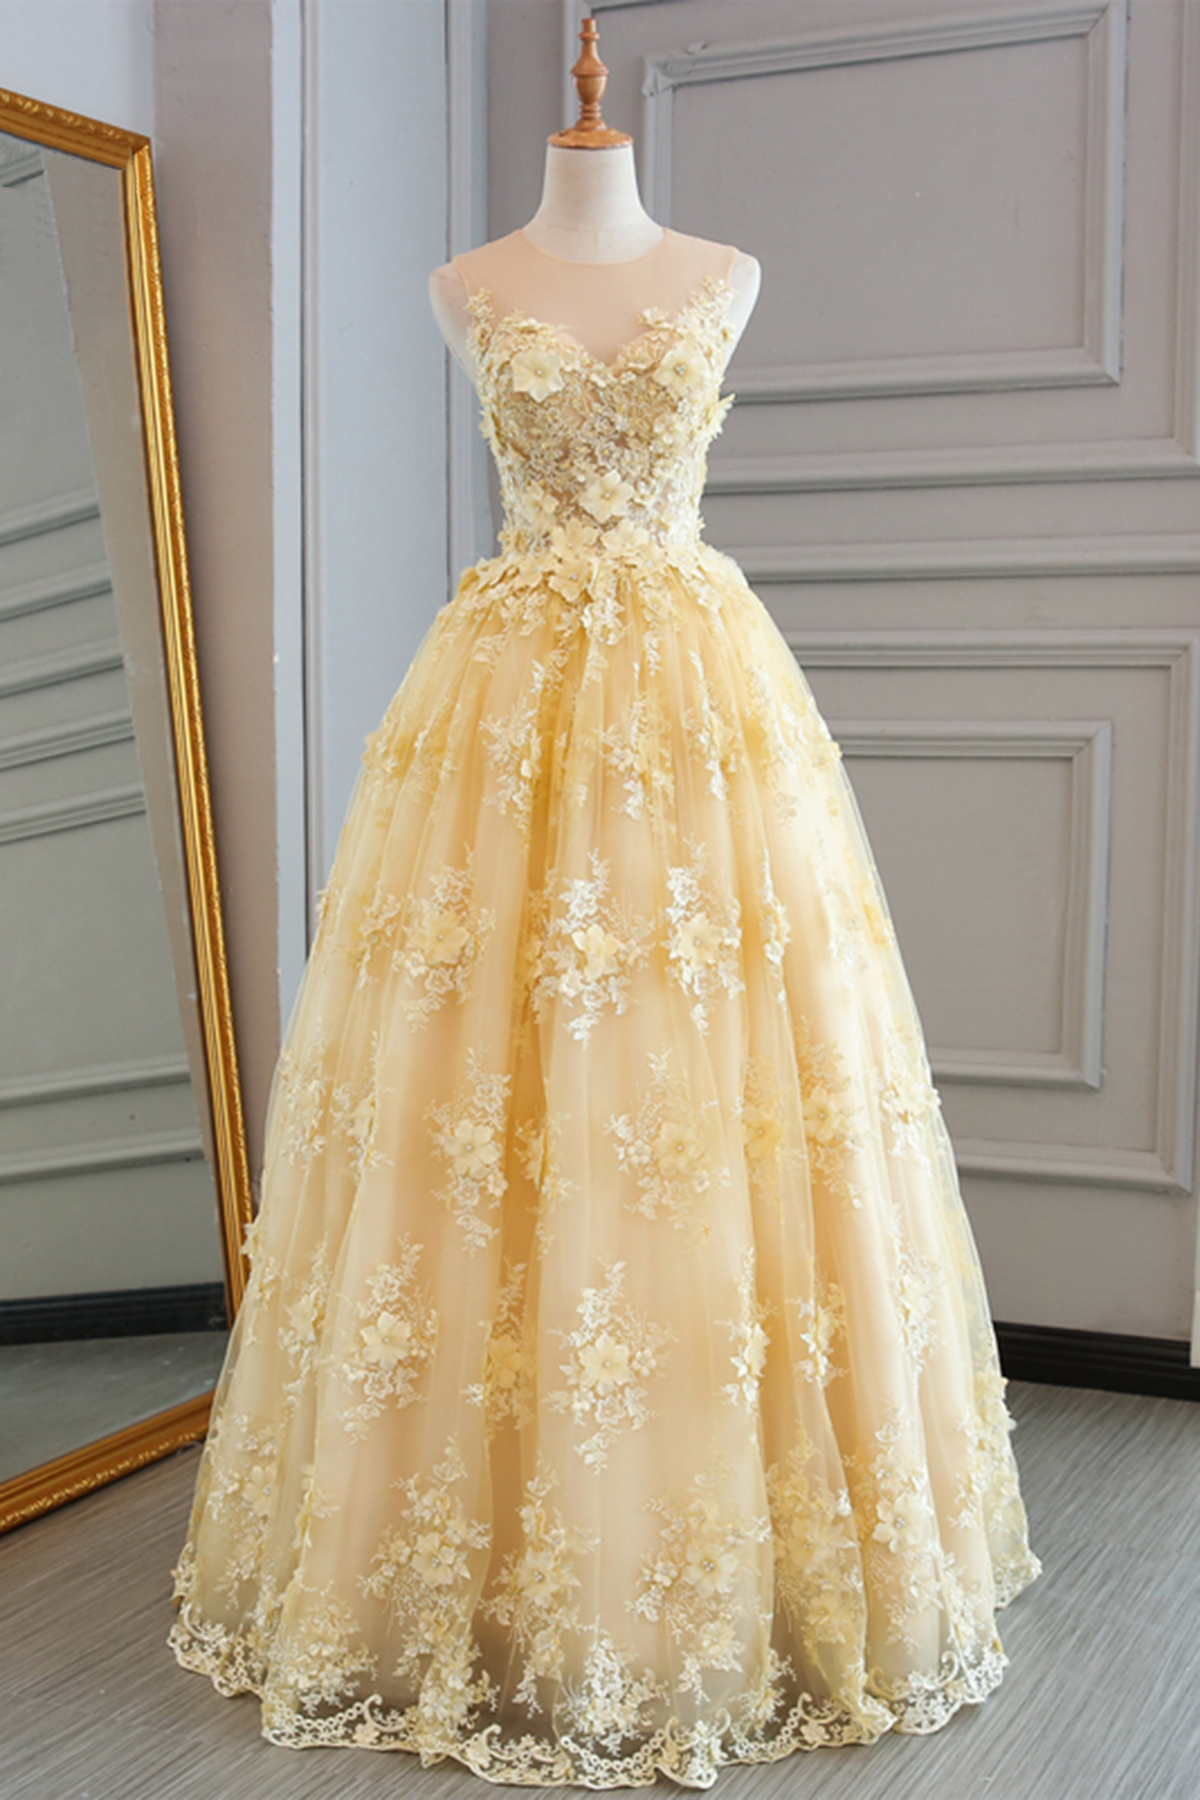 Prom Dresses New Fashion Prom Dresses Spring Yellow Lace